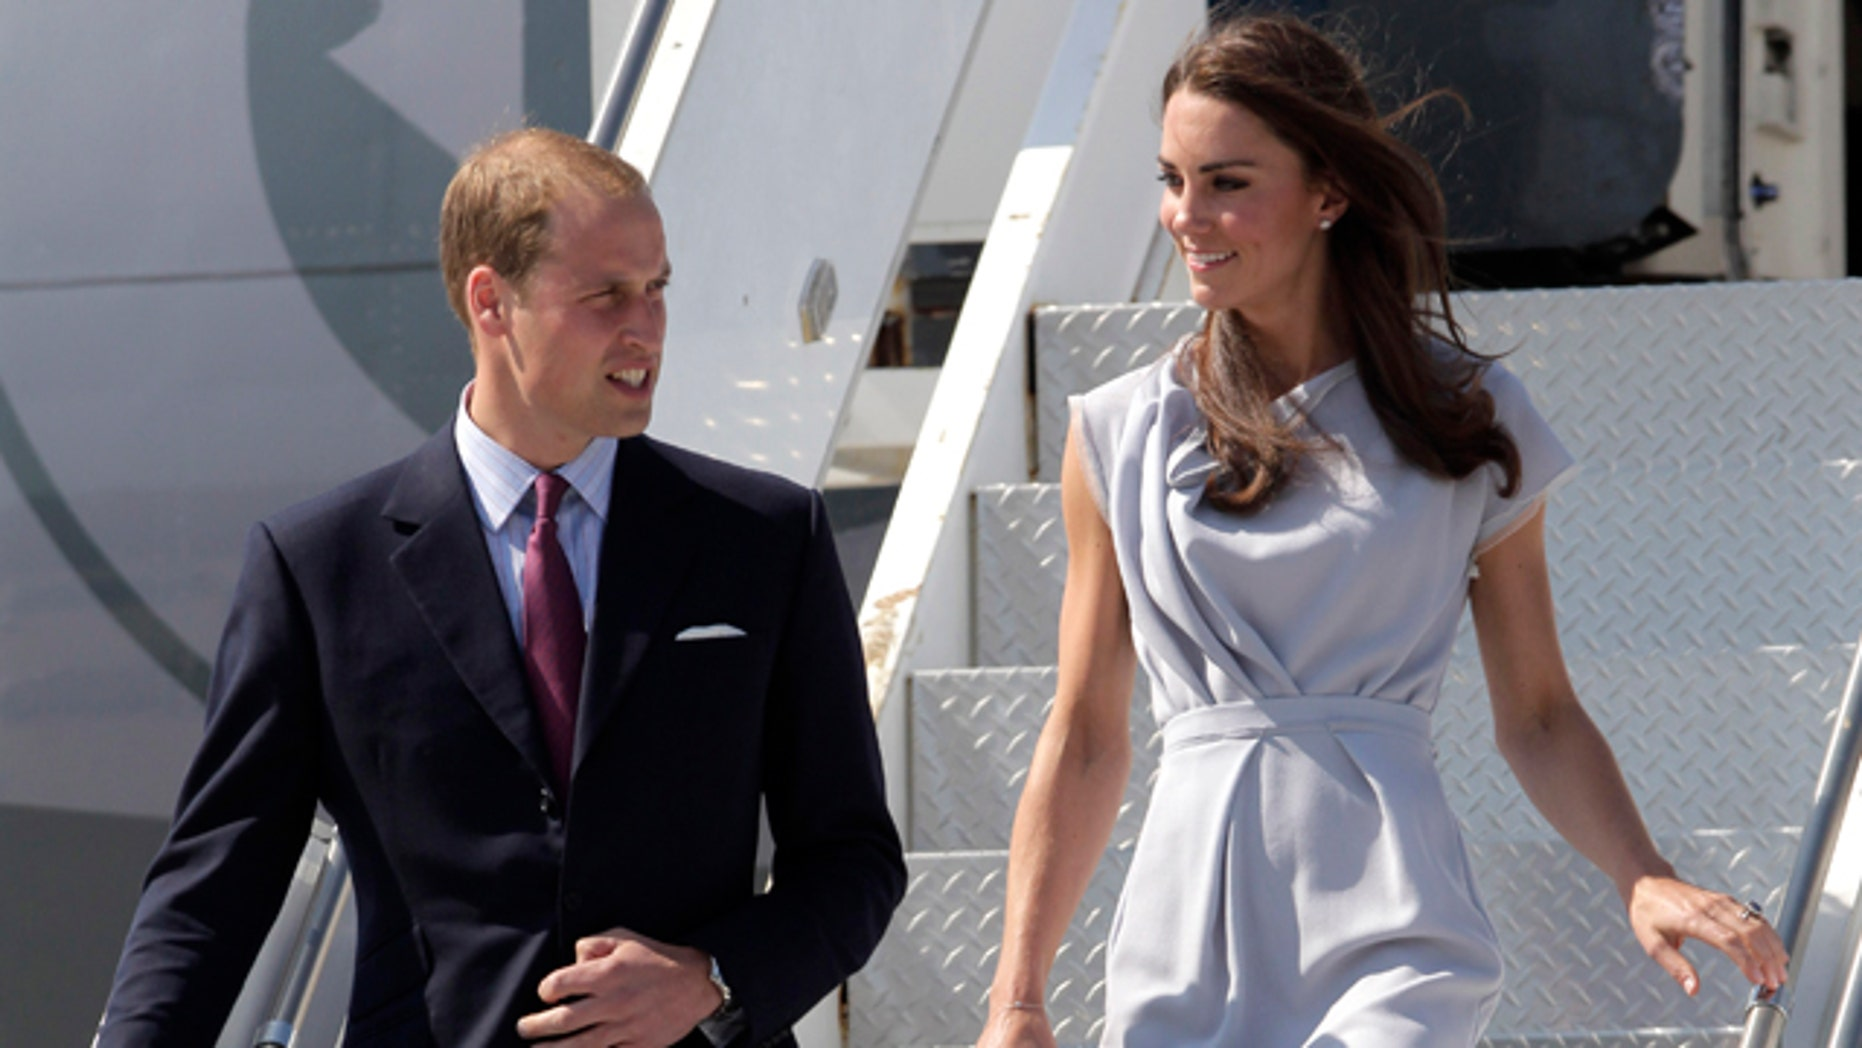 July 8: Prince William and Kate, the Duke and Duchess of Cambridge, arrive at Los Angeles International Airport in Los Angeles.